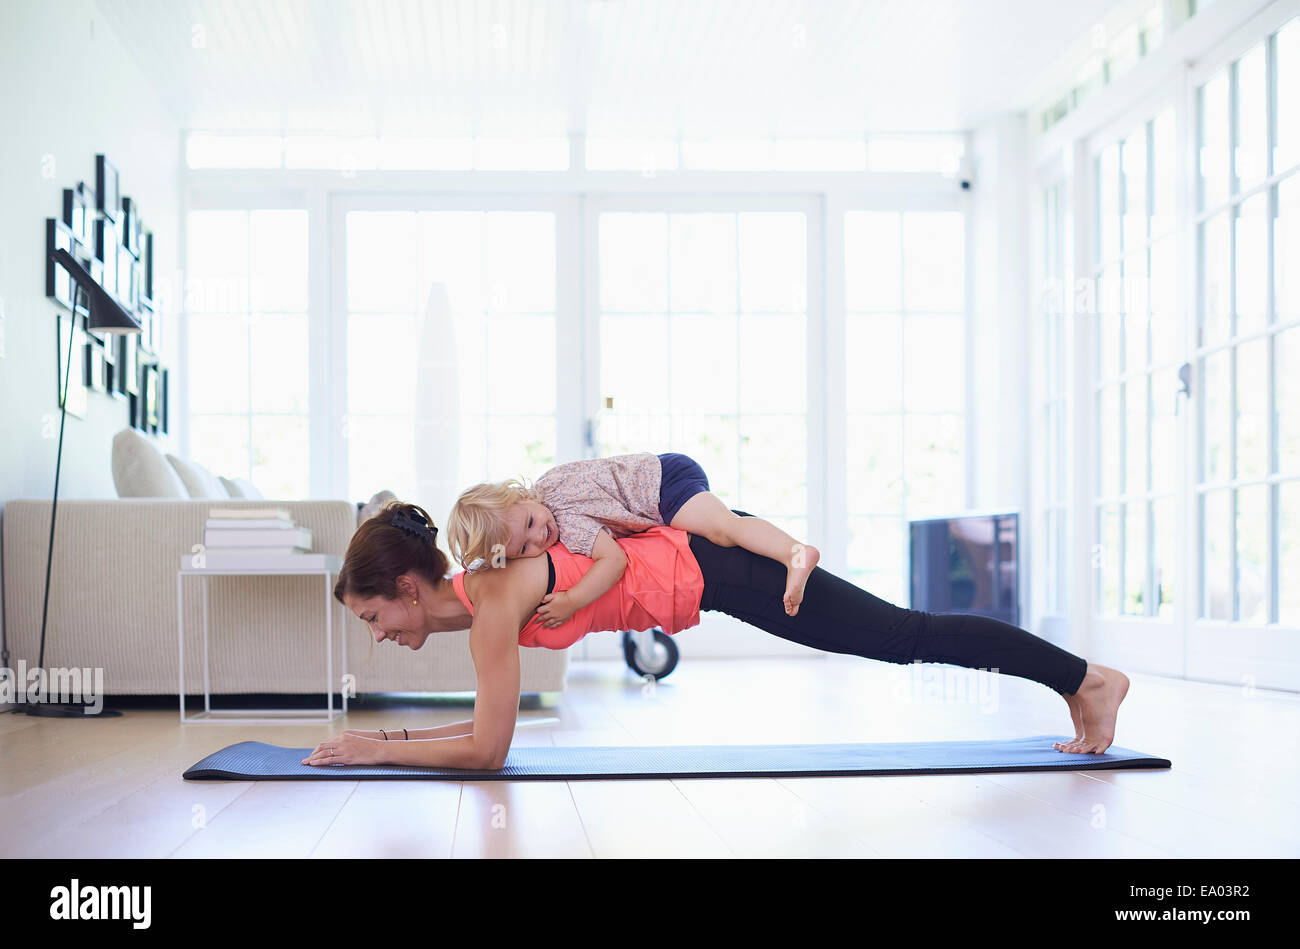 Mid adult mother practicing yoga with toddler daughter on top of her - Stock Image